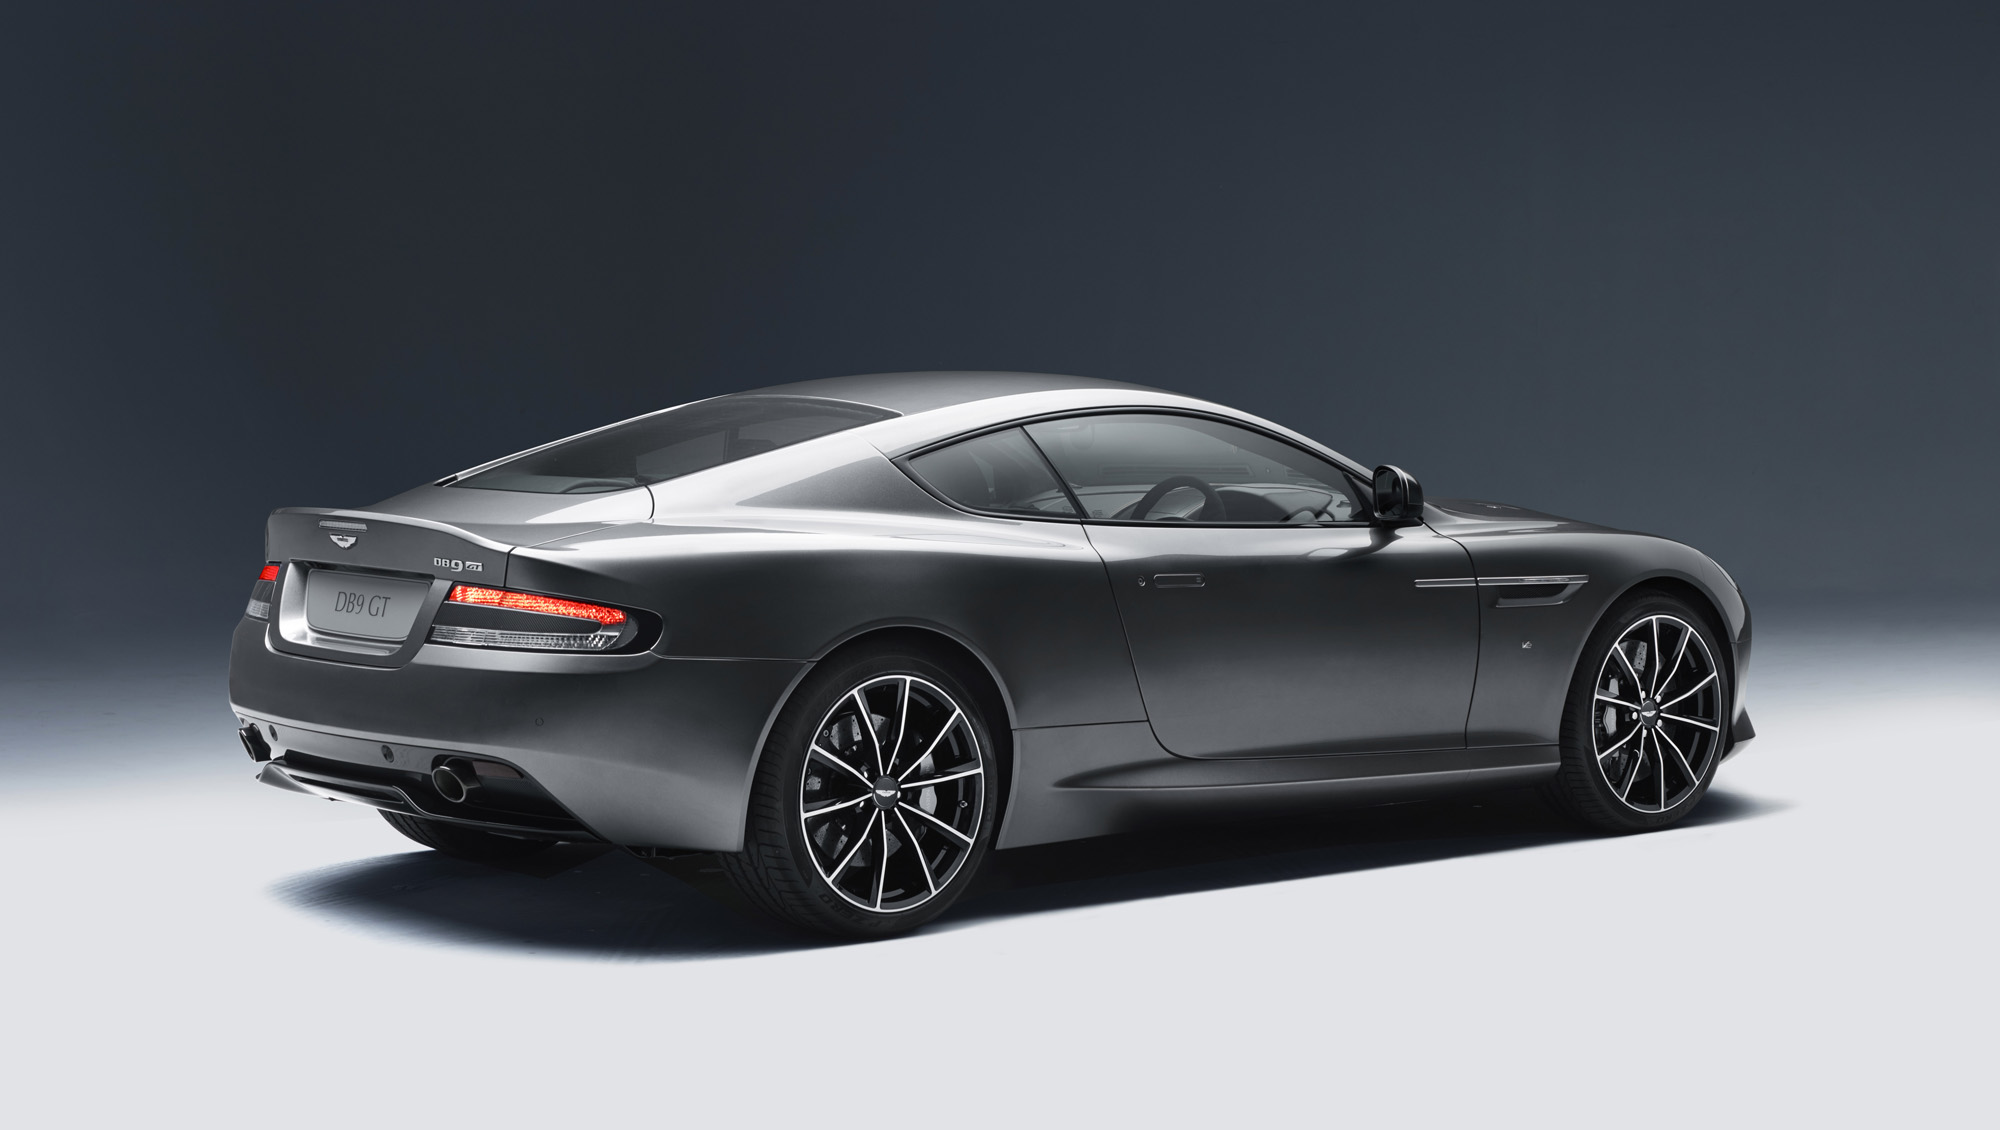 2015 aston martin db9 gt to debut at pebble beach » autoguide news